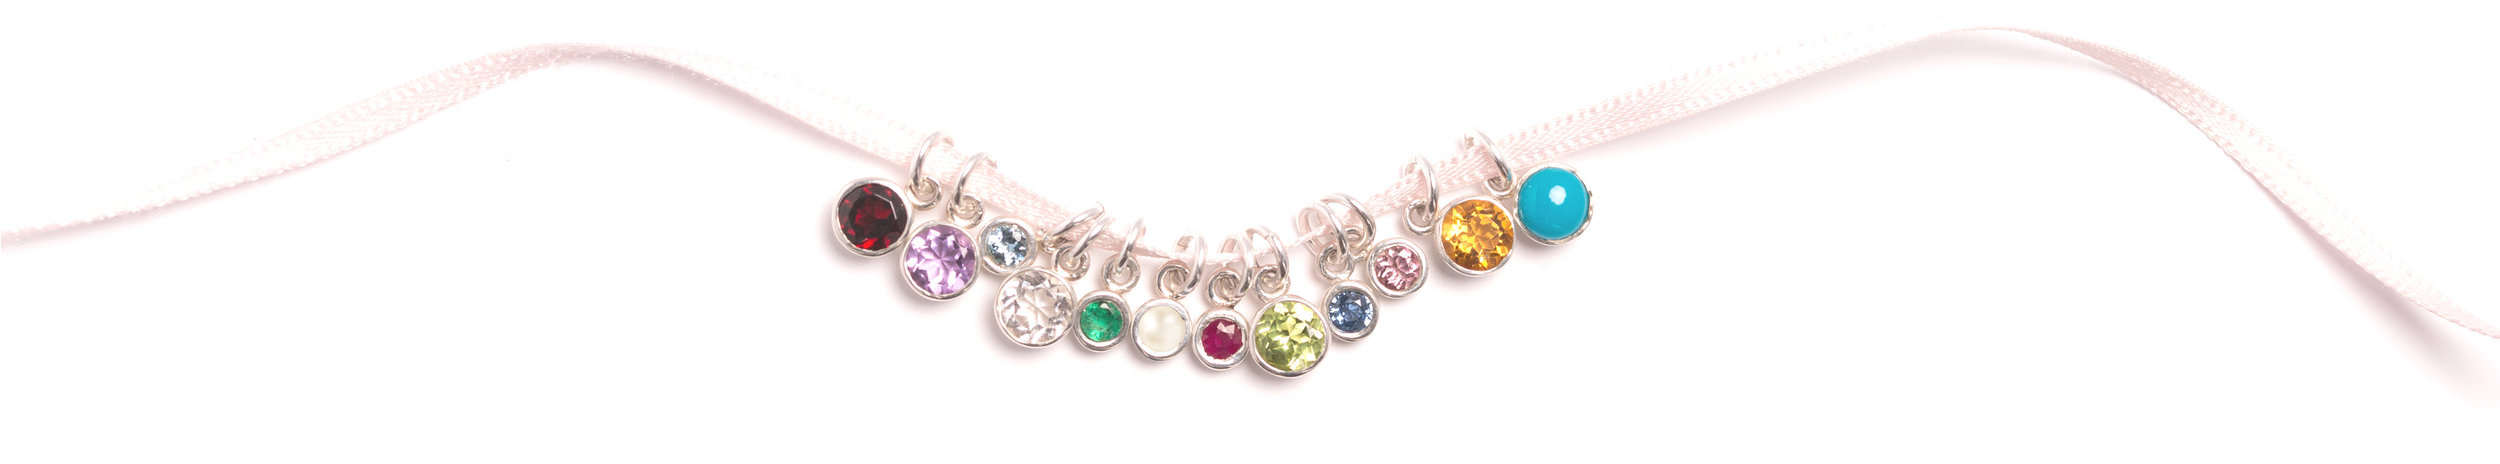 birthstones on ribbon with pearl straight light centered cropped.jpg